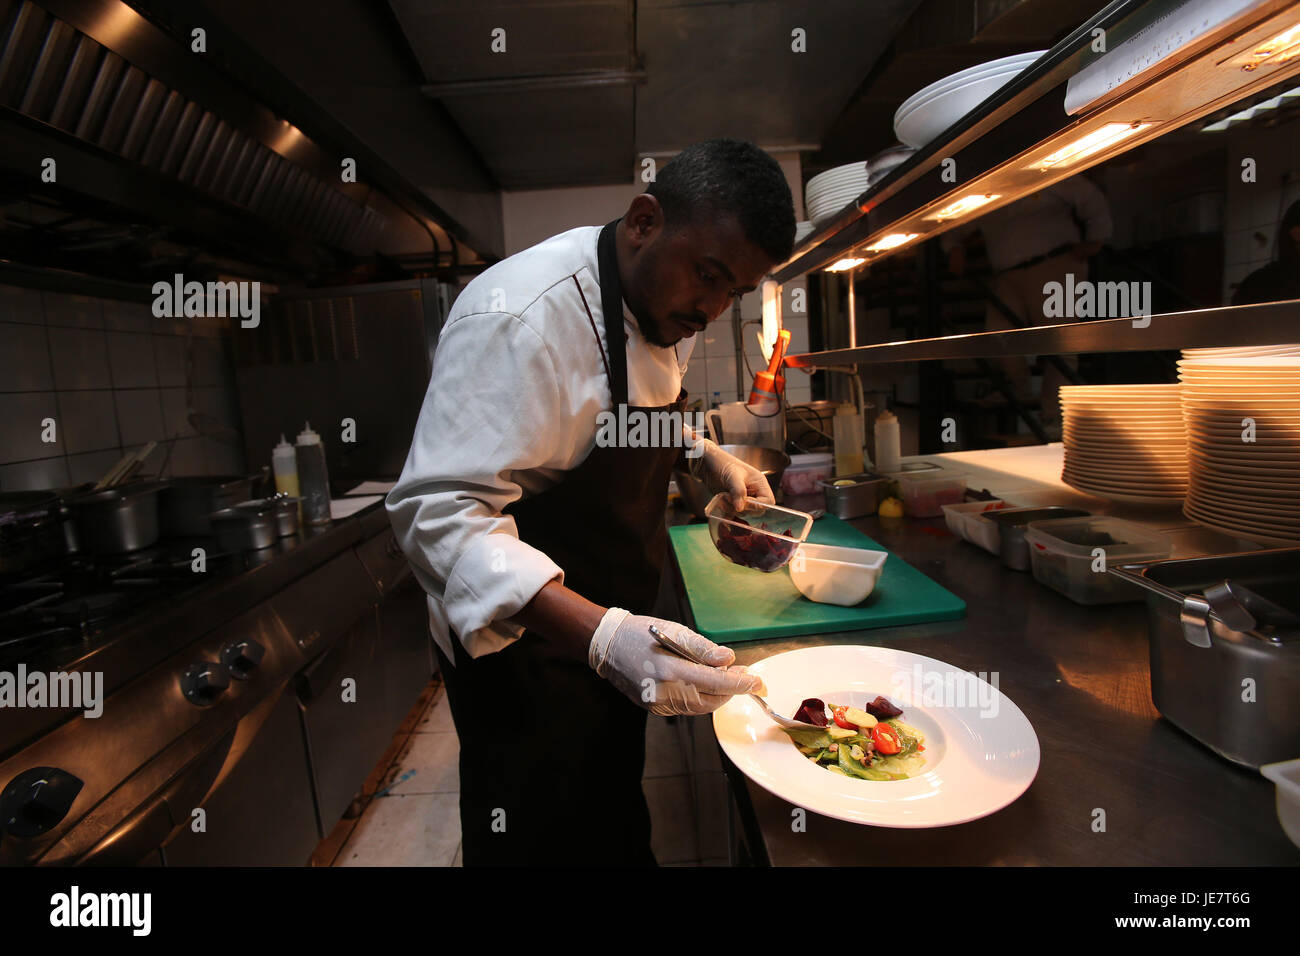 Athens, Greece. 22nd June, 2017. 25-year-old refugee chef Hassan from Somalia, prepares dishes for customers in - Stock Image